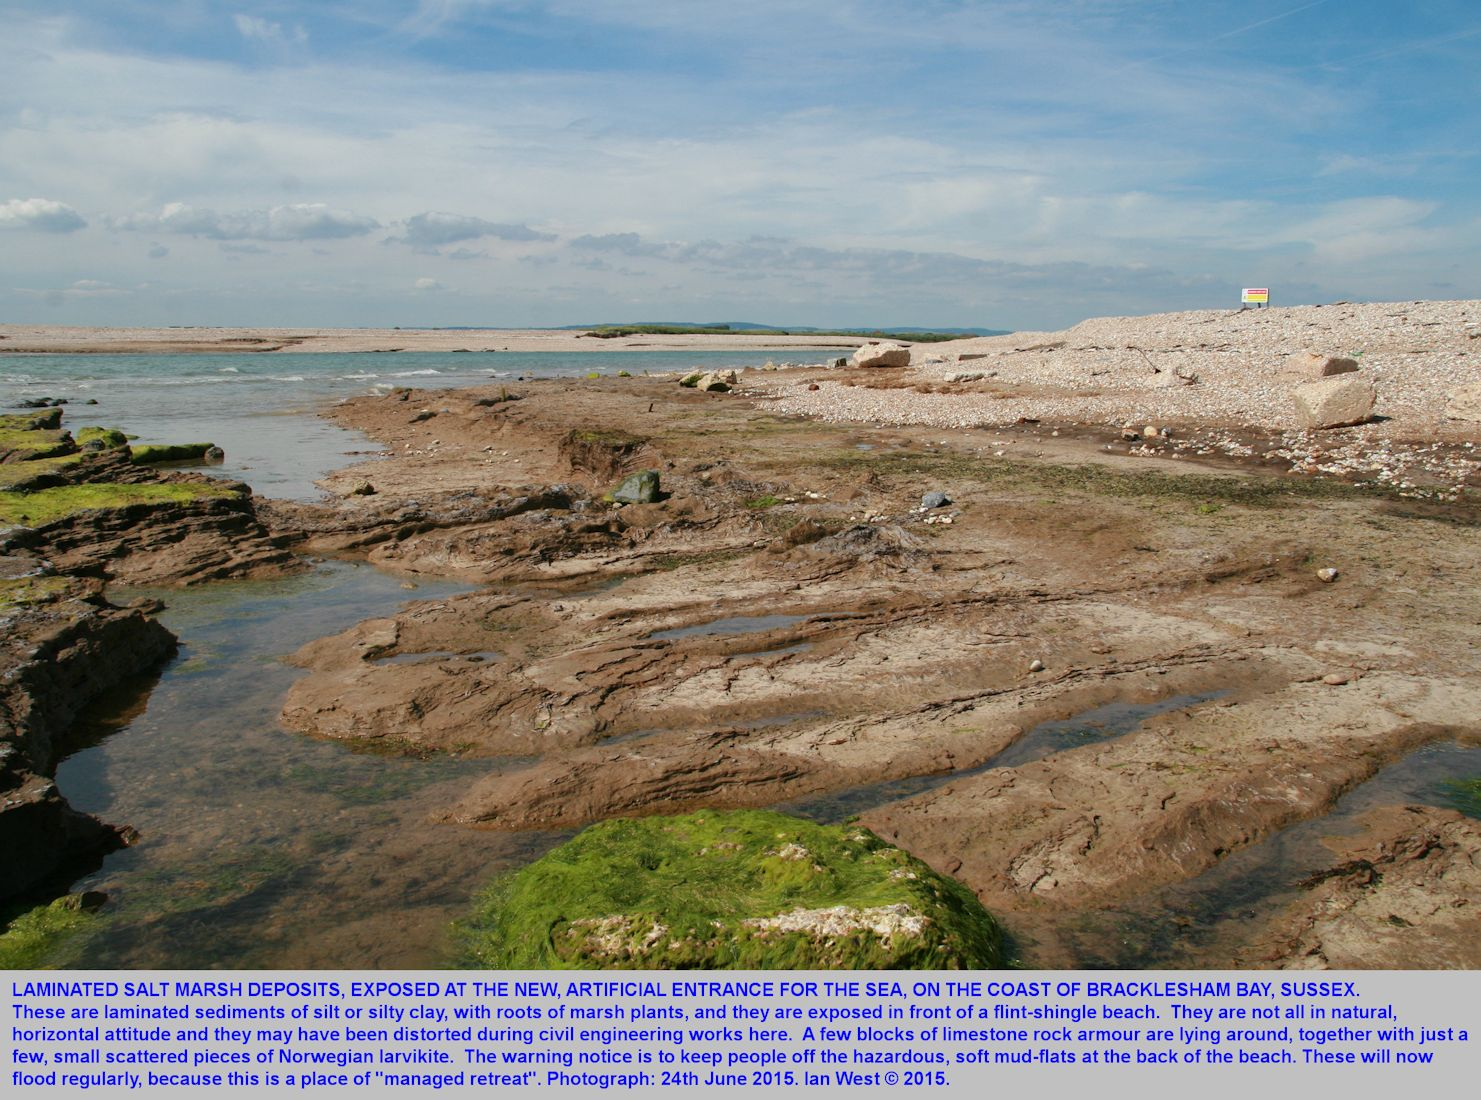 Saltmarsh deposits exposed in front of the flint-shingle beach at the new cutting in Bracklesham Bay, Sussex, 24th June 2015